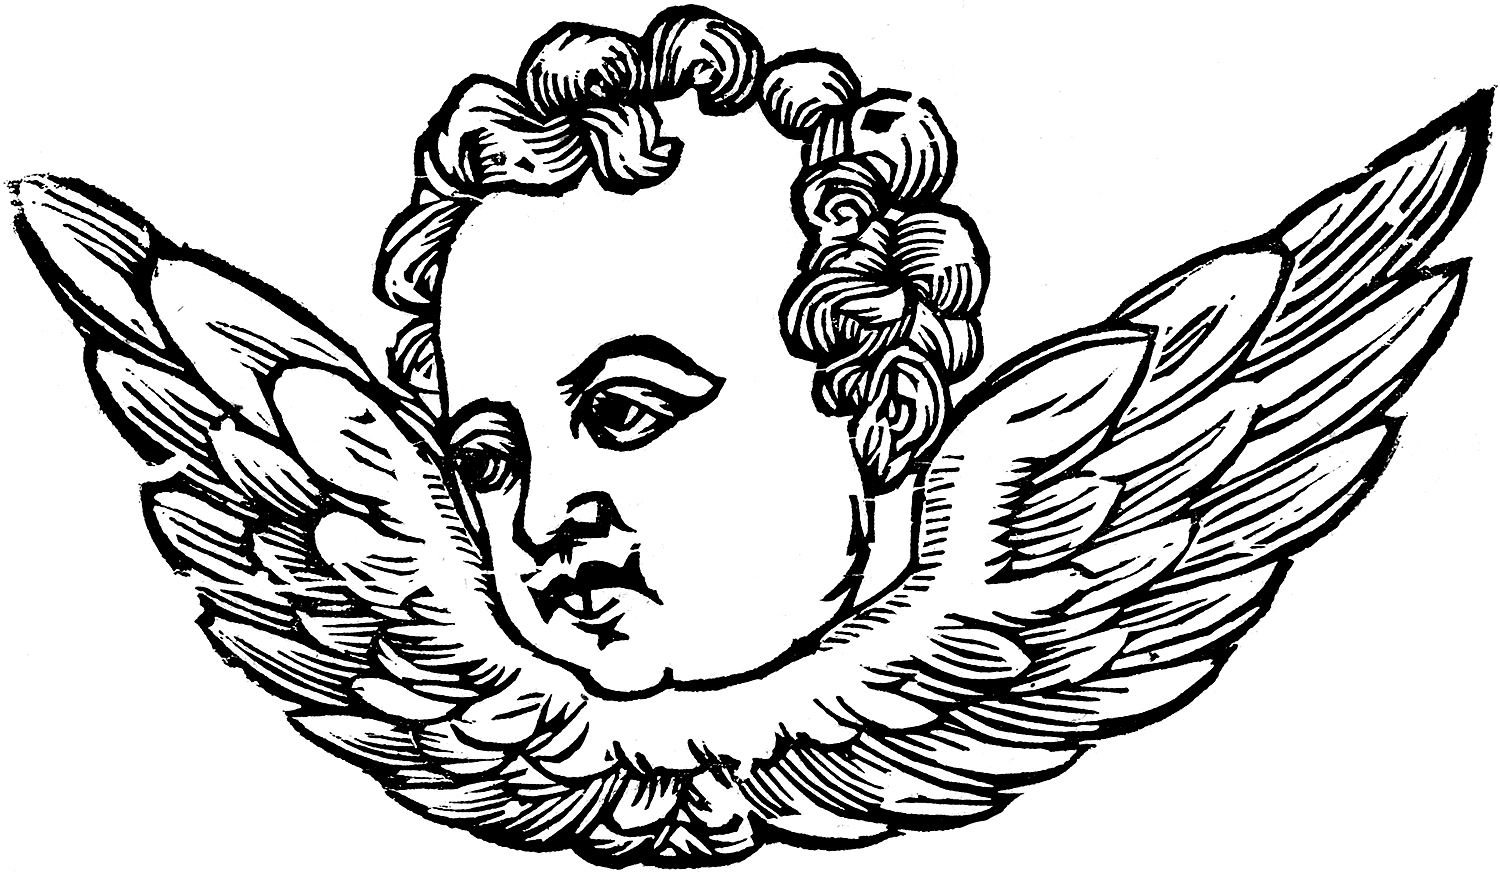 Vintage Serious Cherub with Wings Image